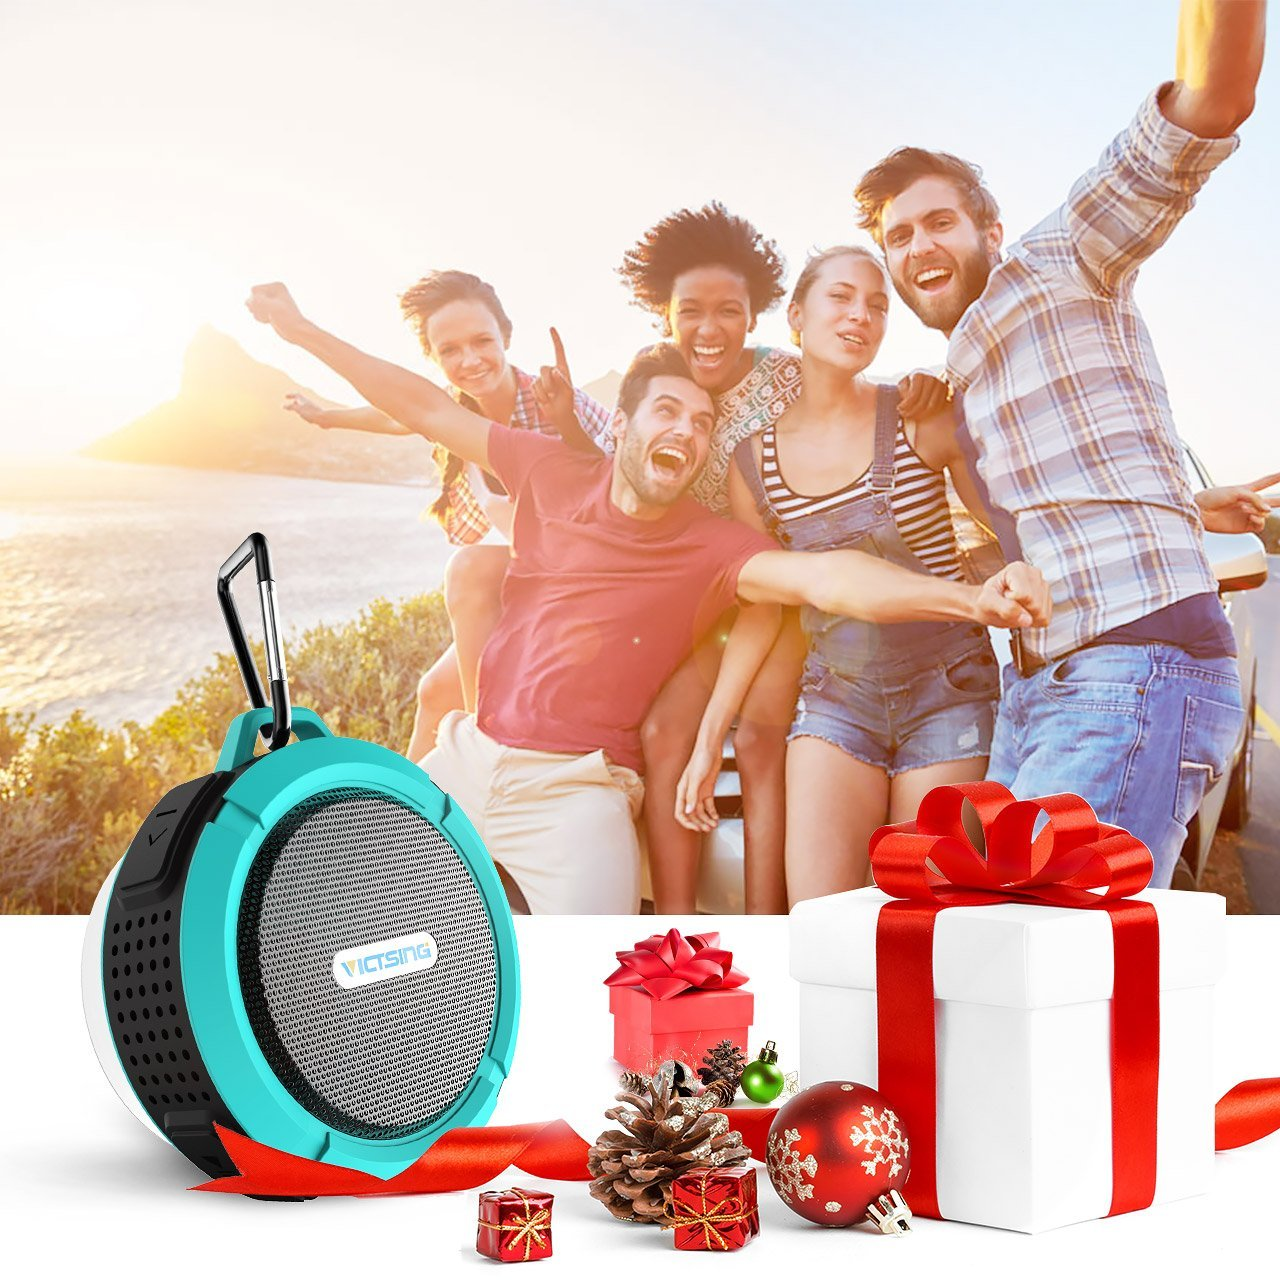 81jWodFipSL. SL1280  - 20 Products From Amazon That'll Make Perfect Gifts